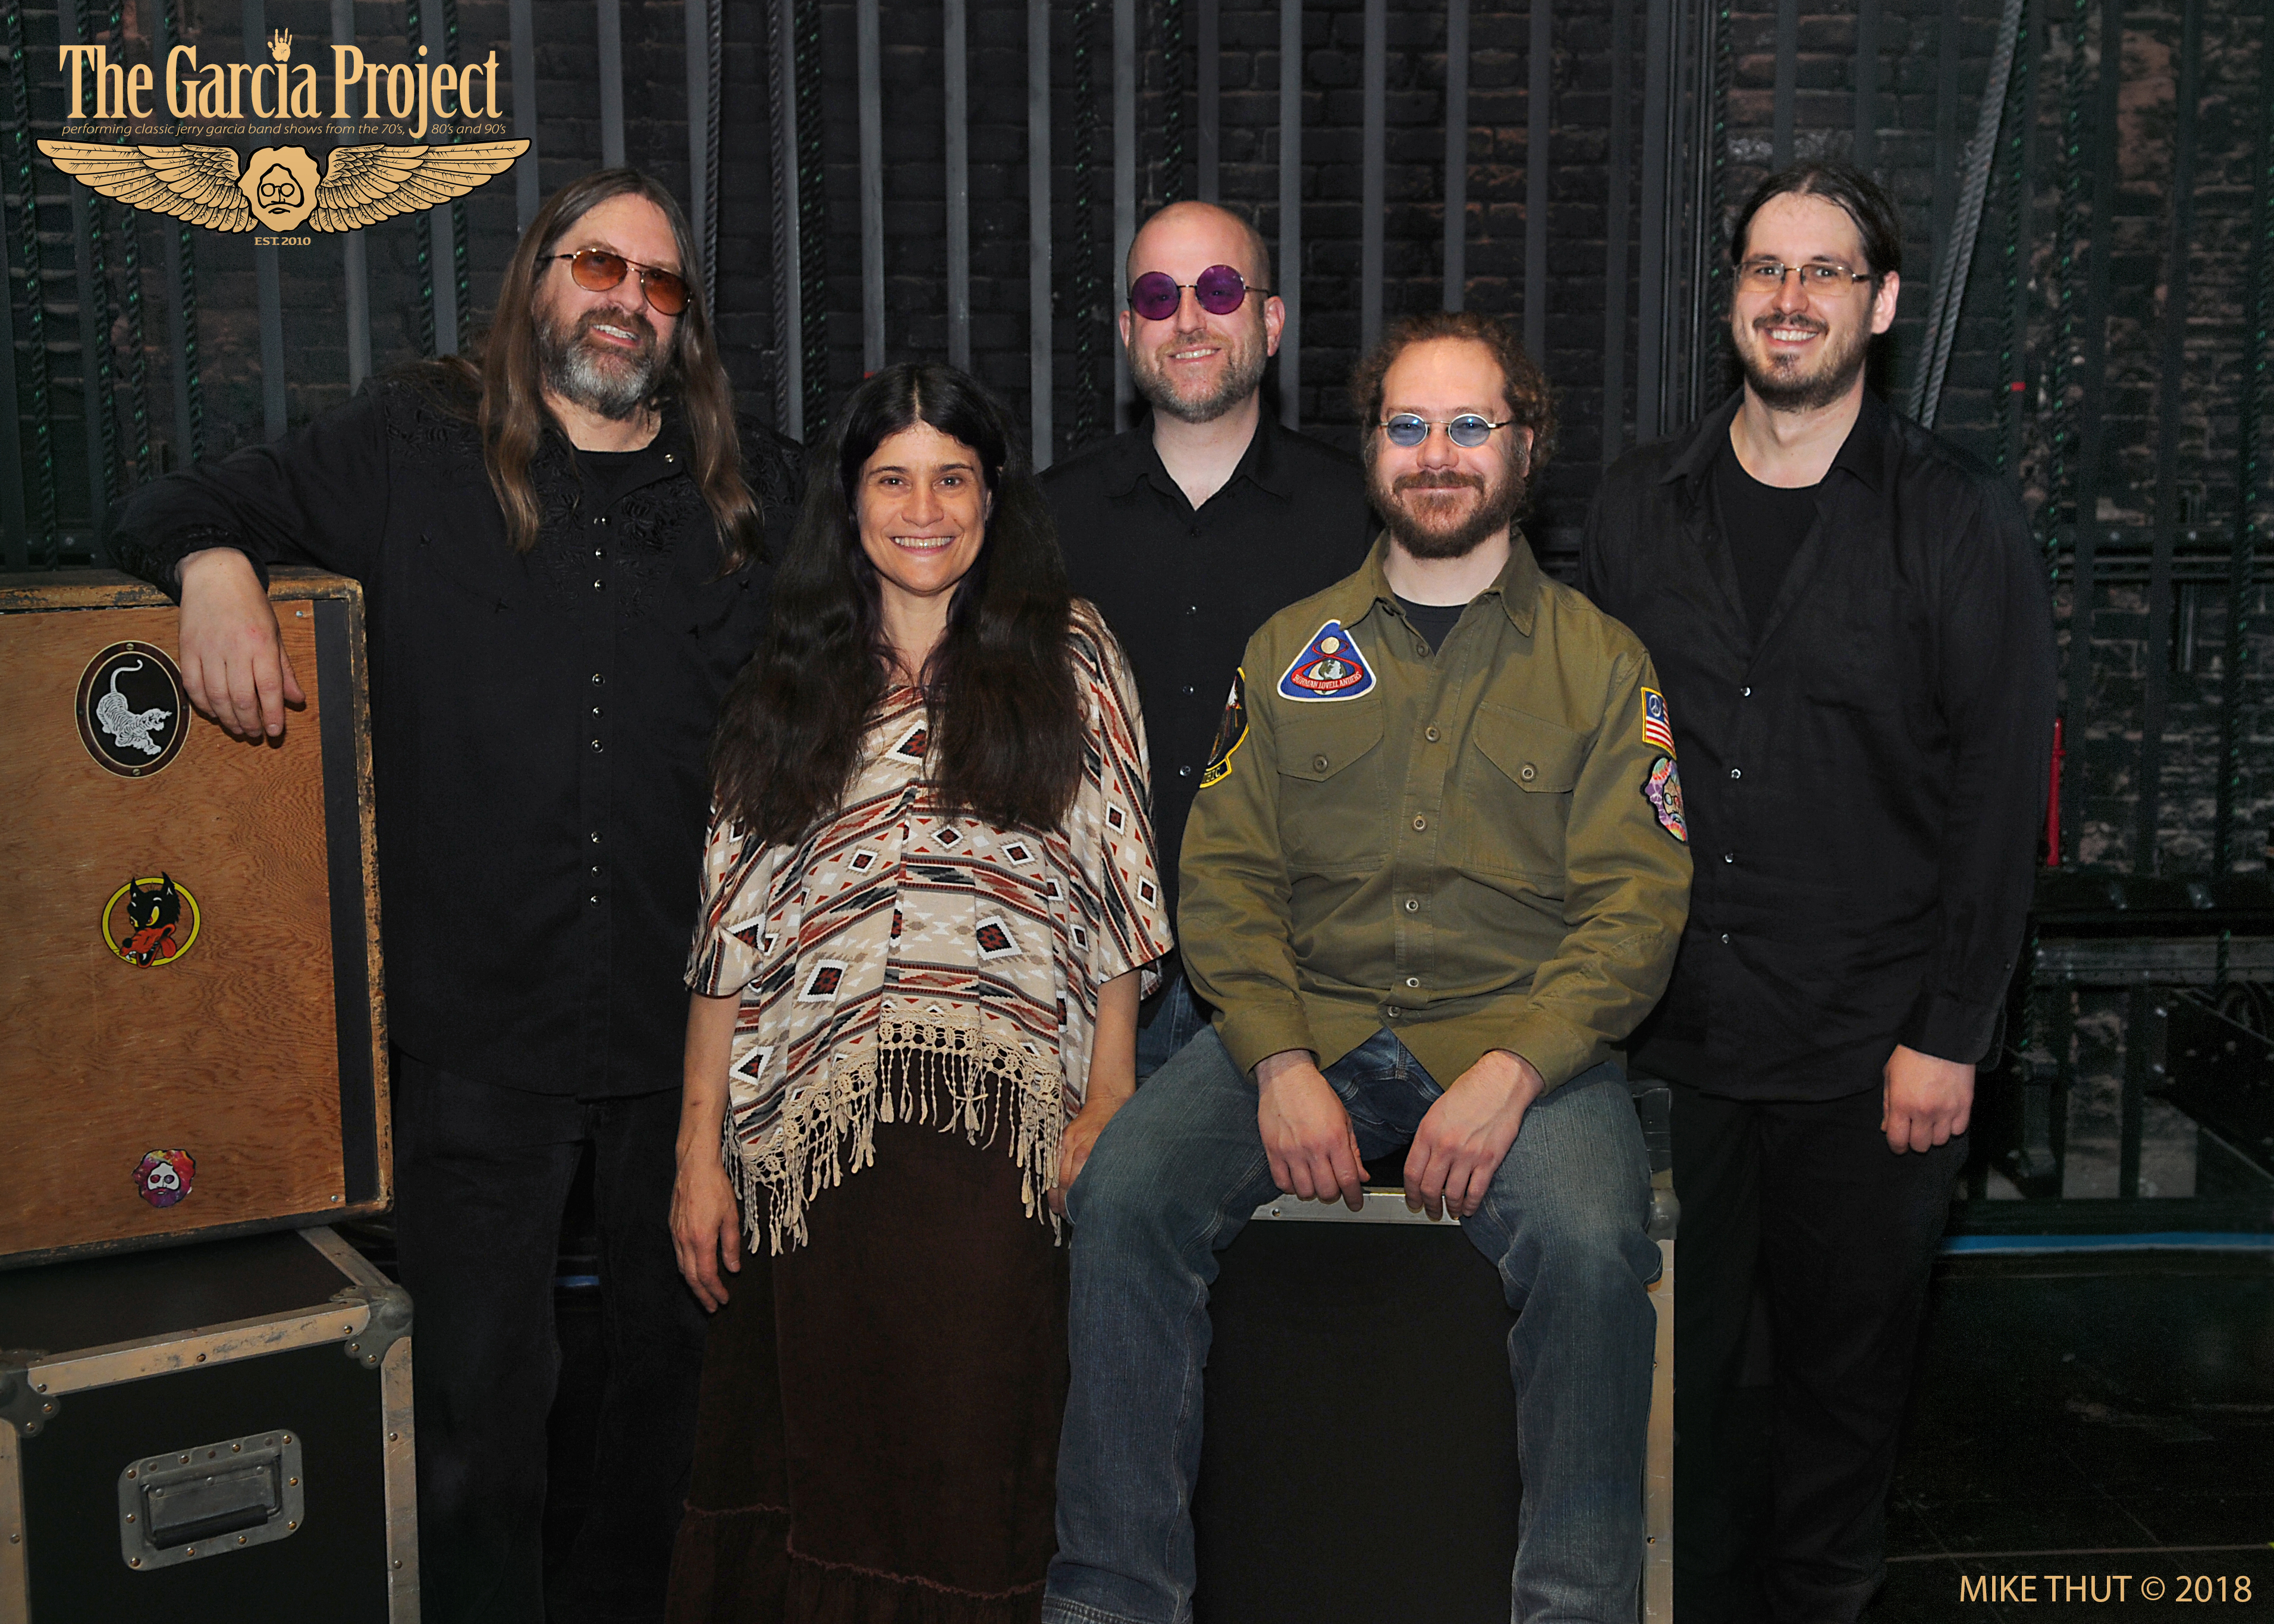 Grateful Dead And Jerry Garcia Band Fans The Garcia Project Is Coming